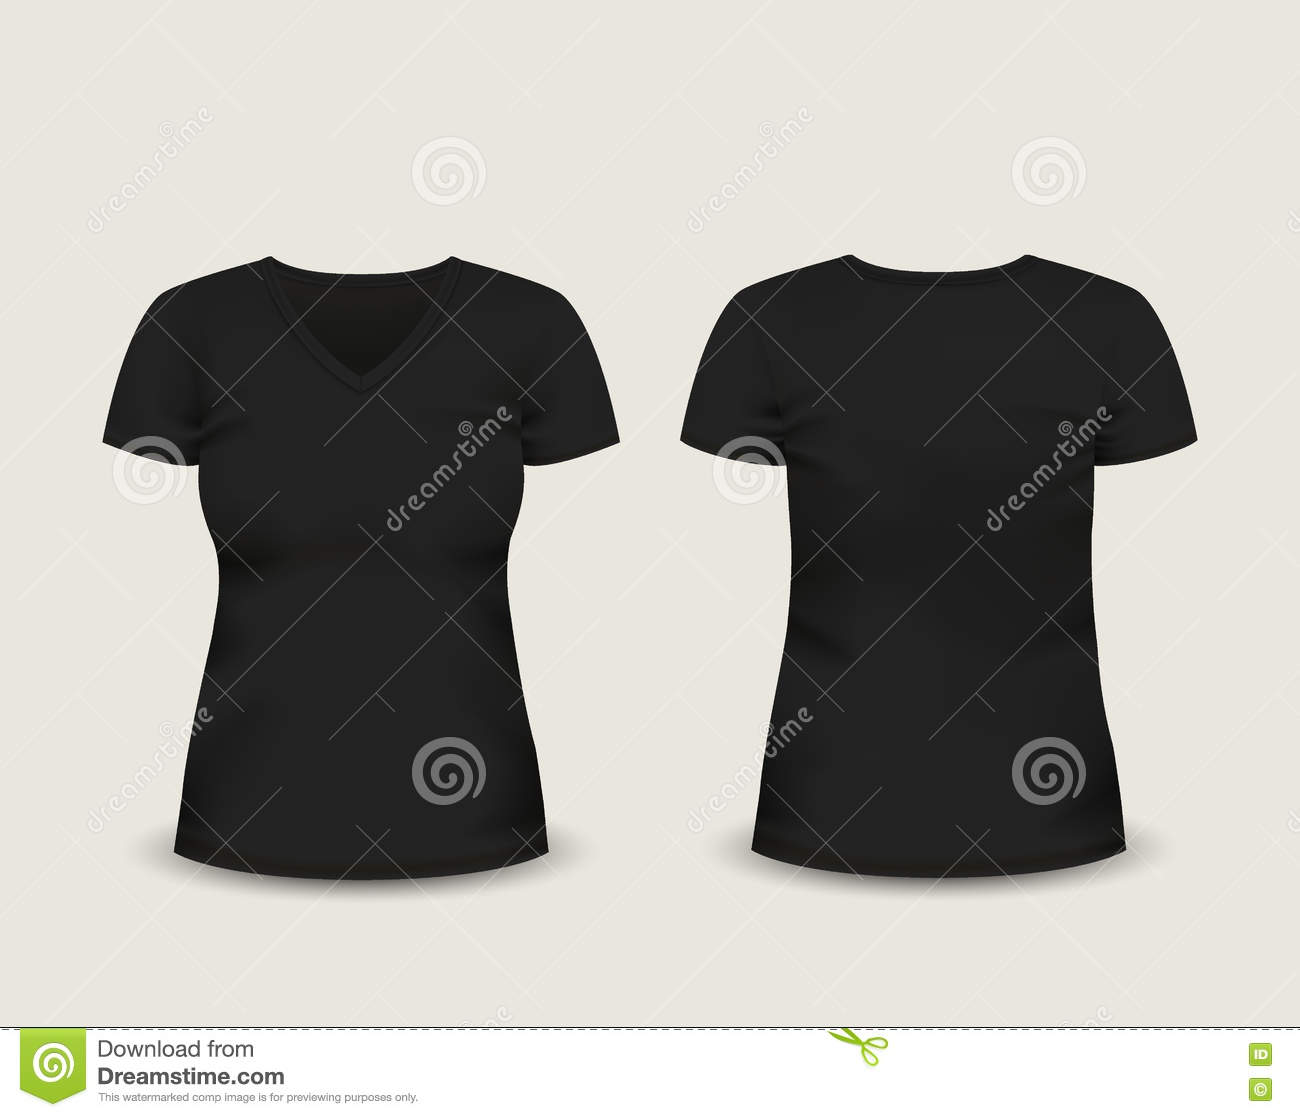 Black t shirt vector front and back - Women S Black V Neck T Shirt Short Sleeve With In Front And Back Views